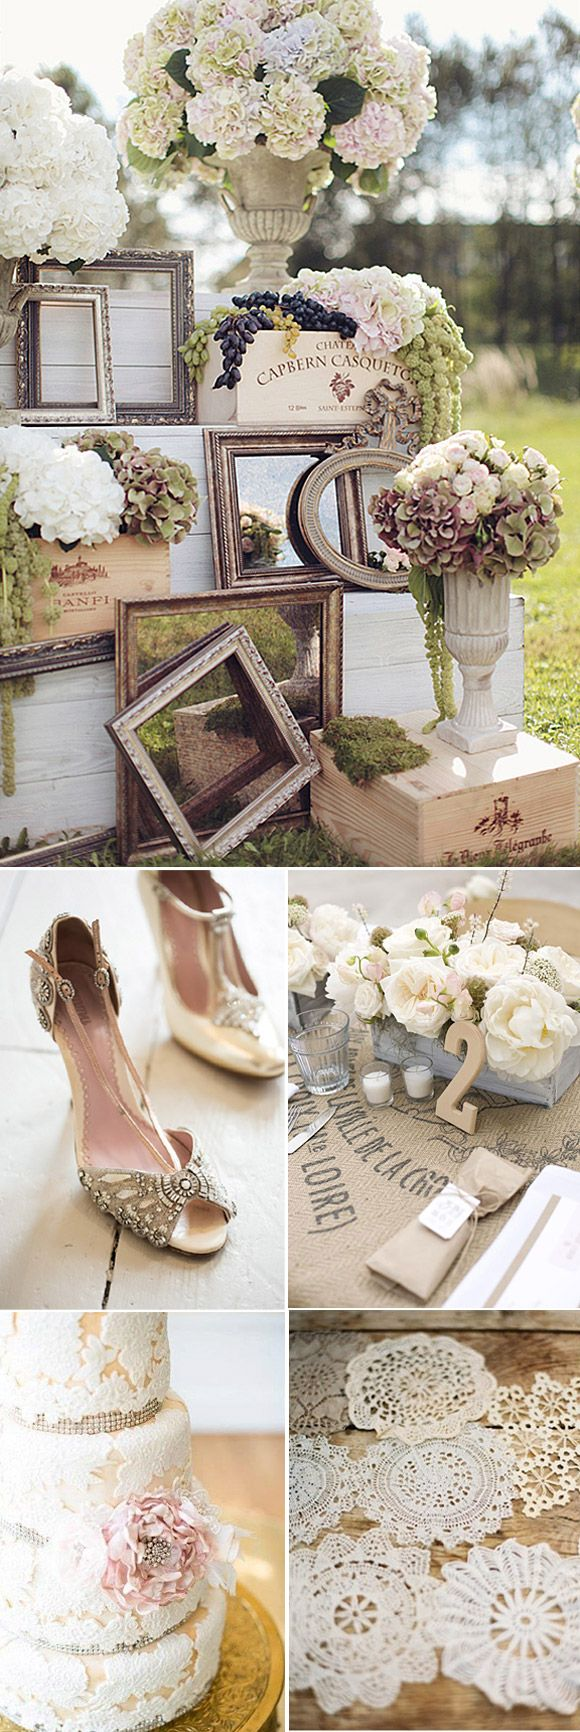 Vintage Decoracion Boda ~ Explore Bodas Vintage Mesas, Vintage Wedding, and more!